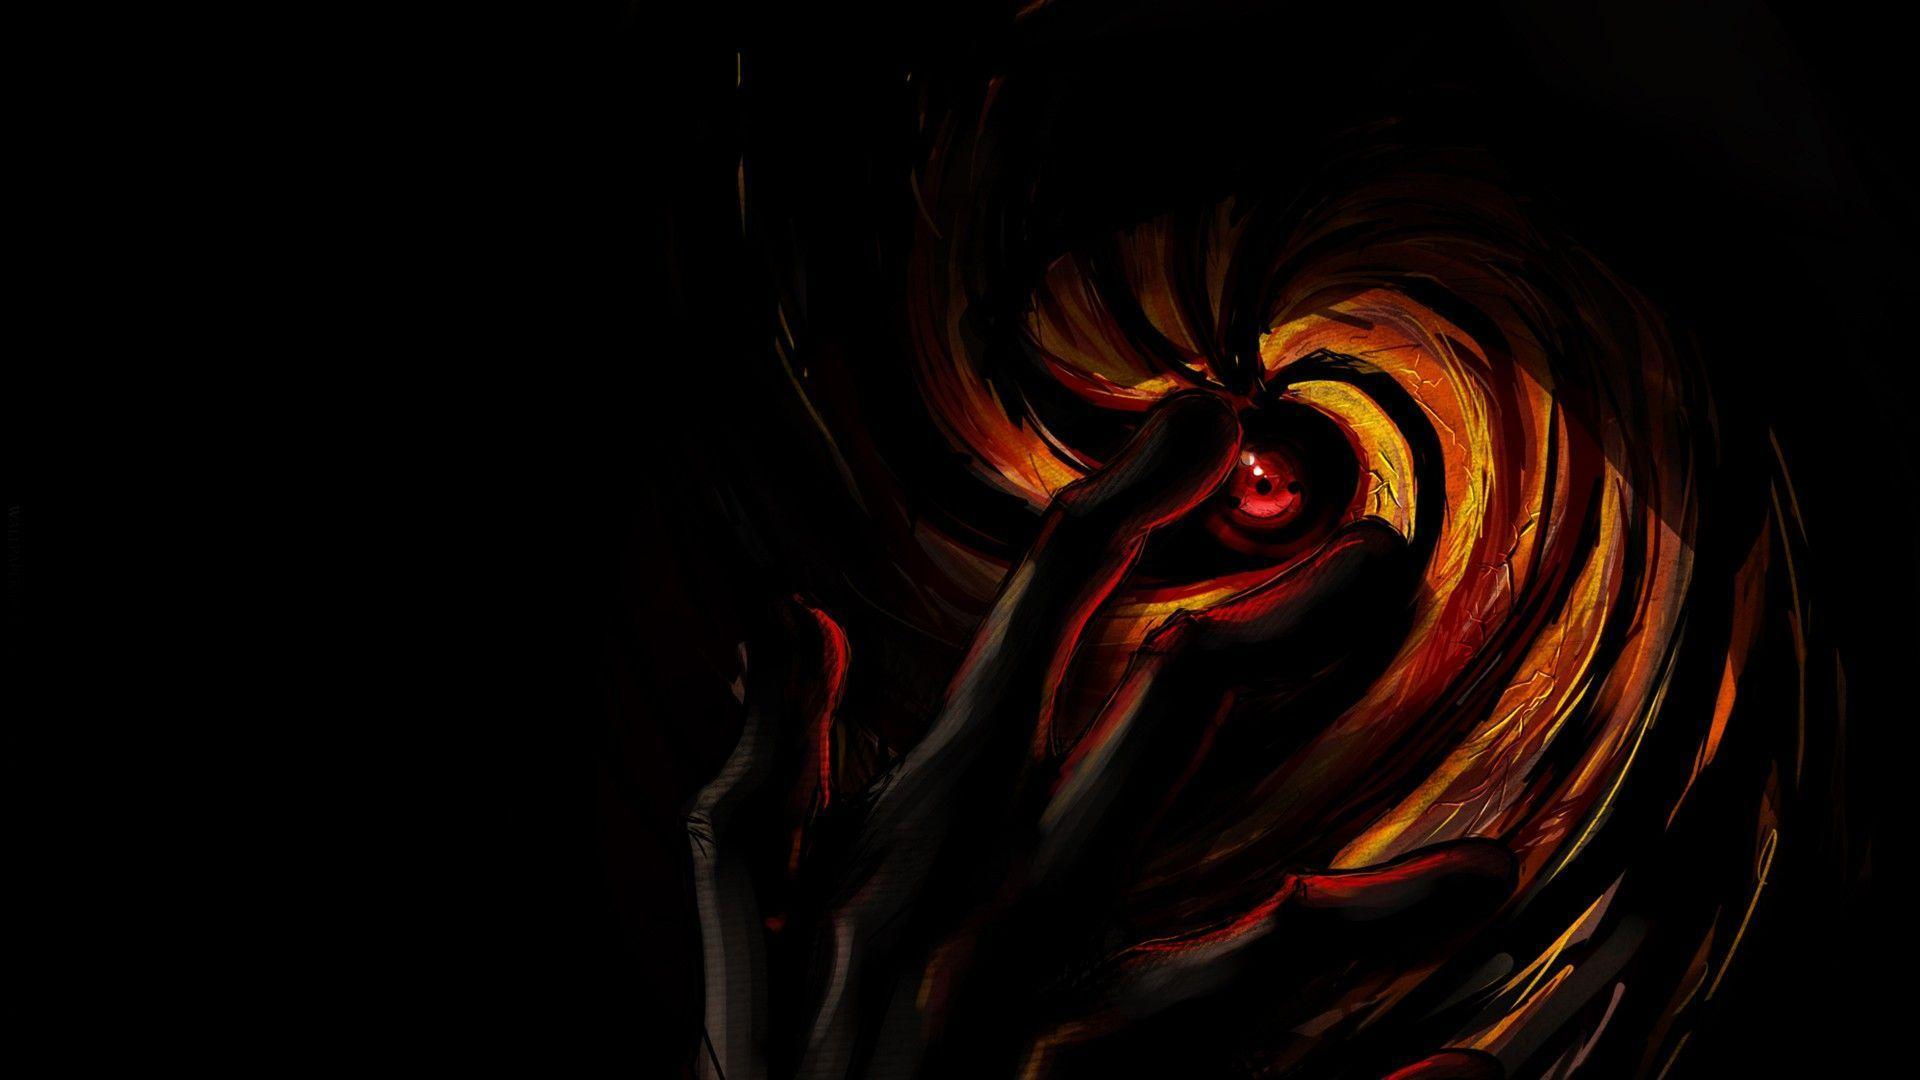 Madara Uchiha Naruto Hd Wallpapers 1920x1080 Madara Uchiha Naruto